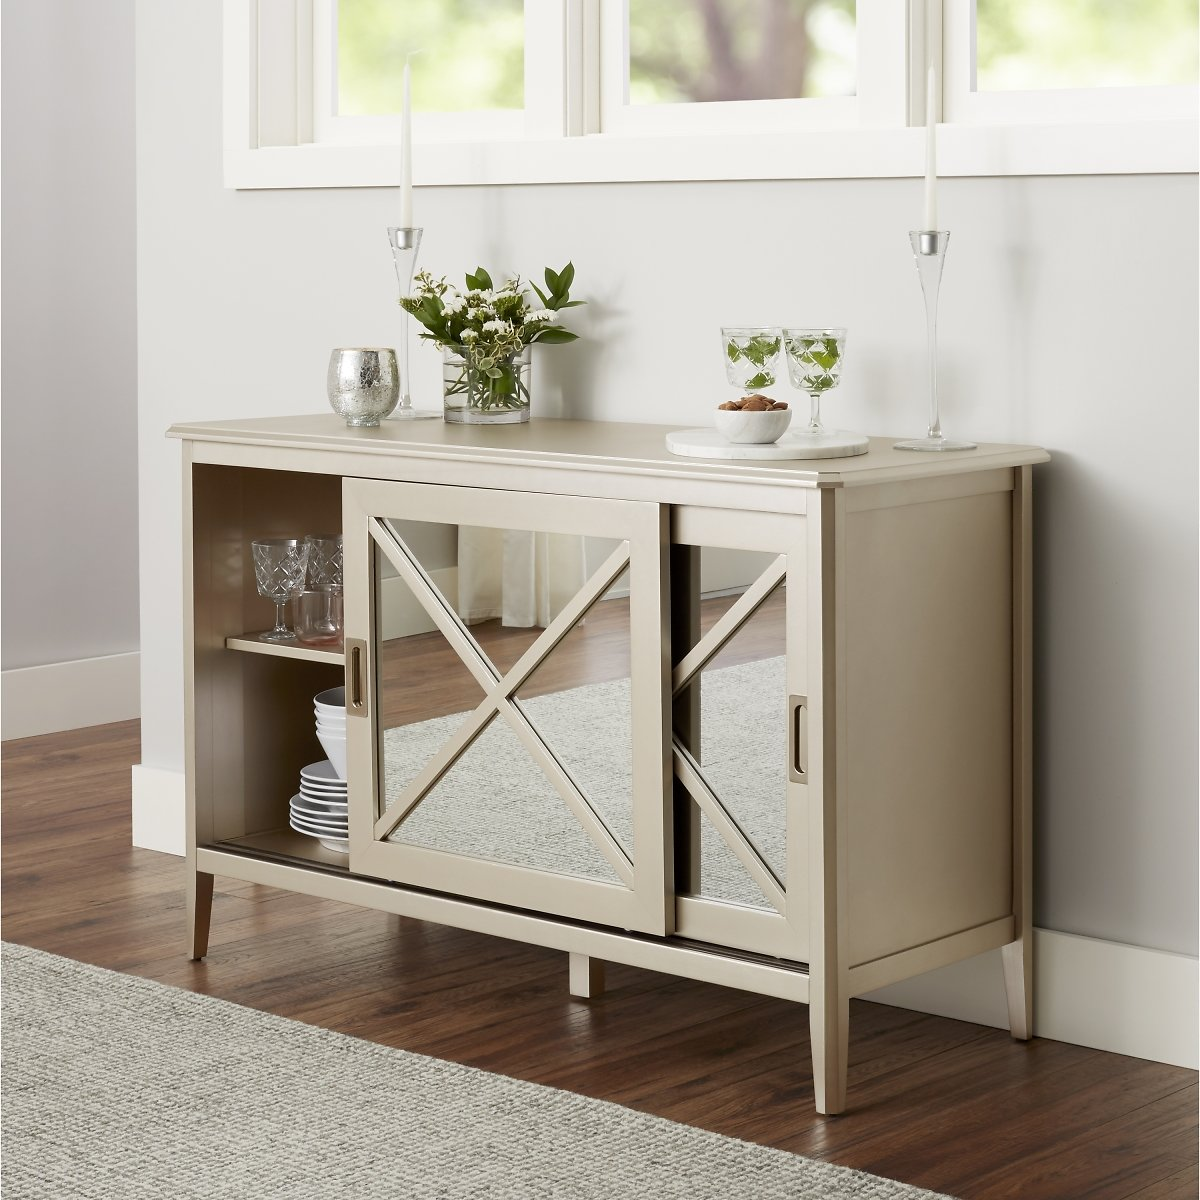 Better Homes & Gardens Credenza (Ships Free)